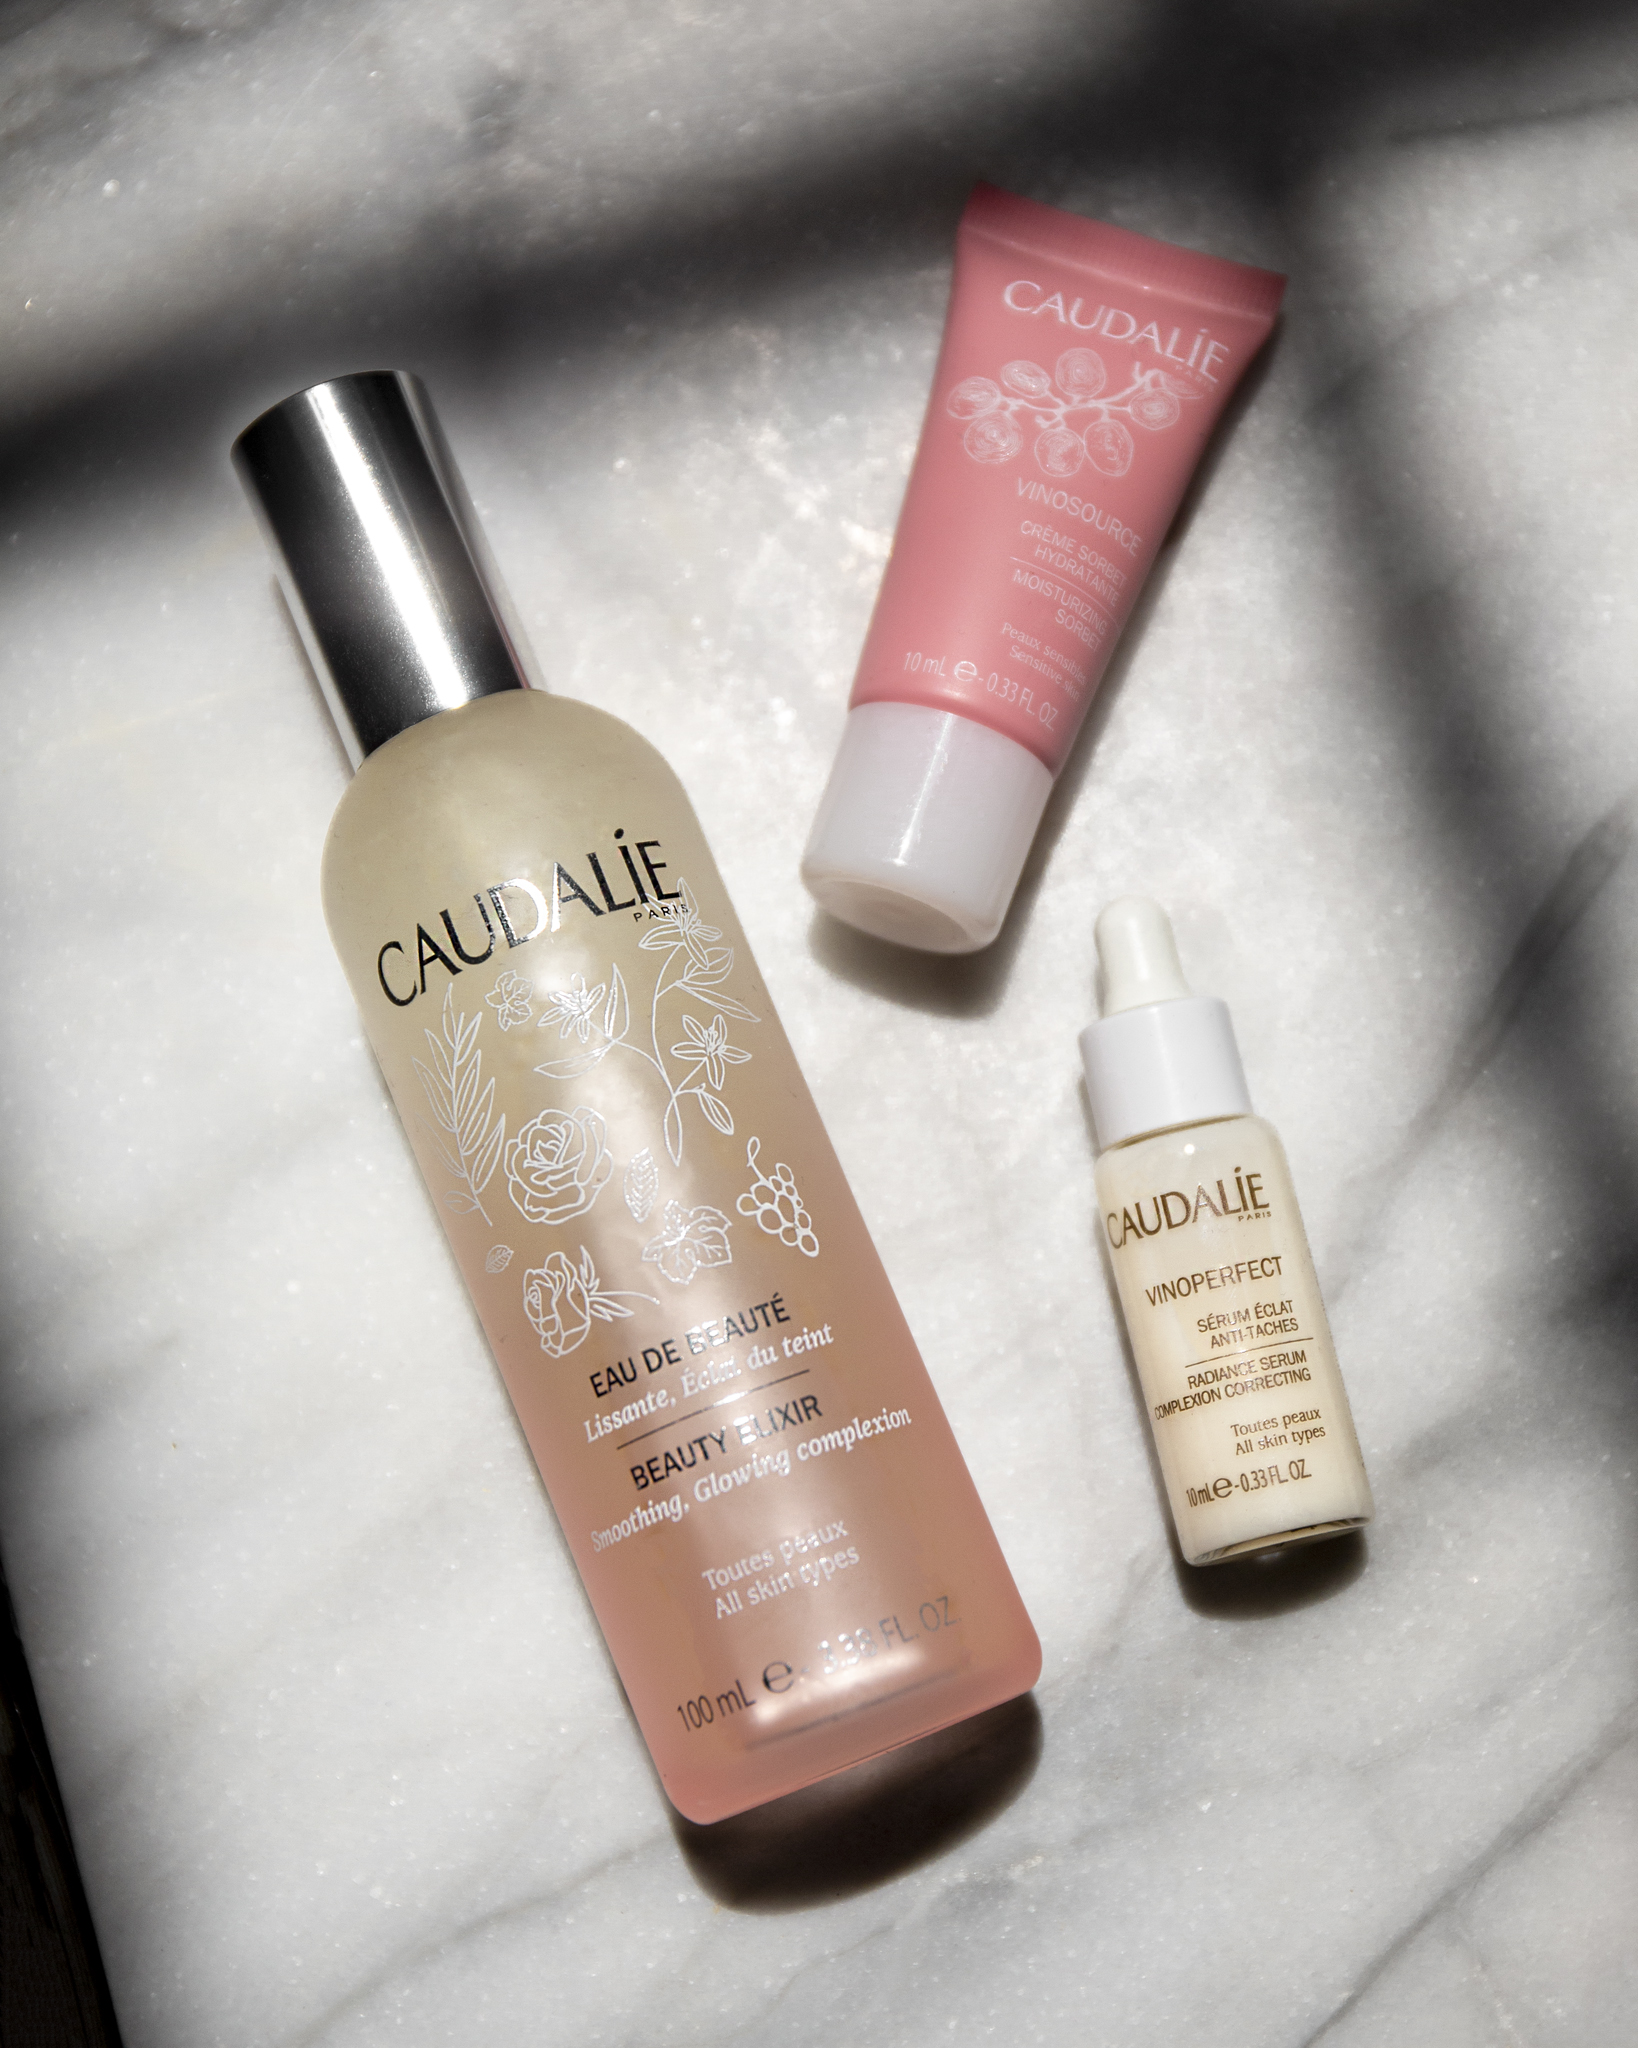 Caudalie Llmited Edition Beauty Elixir